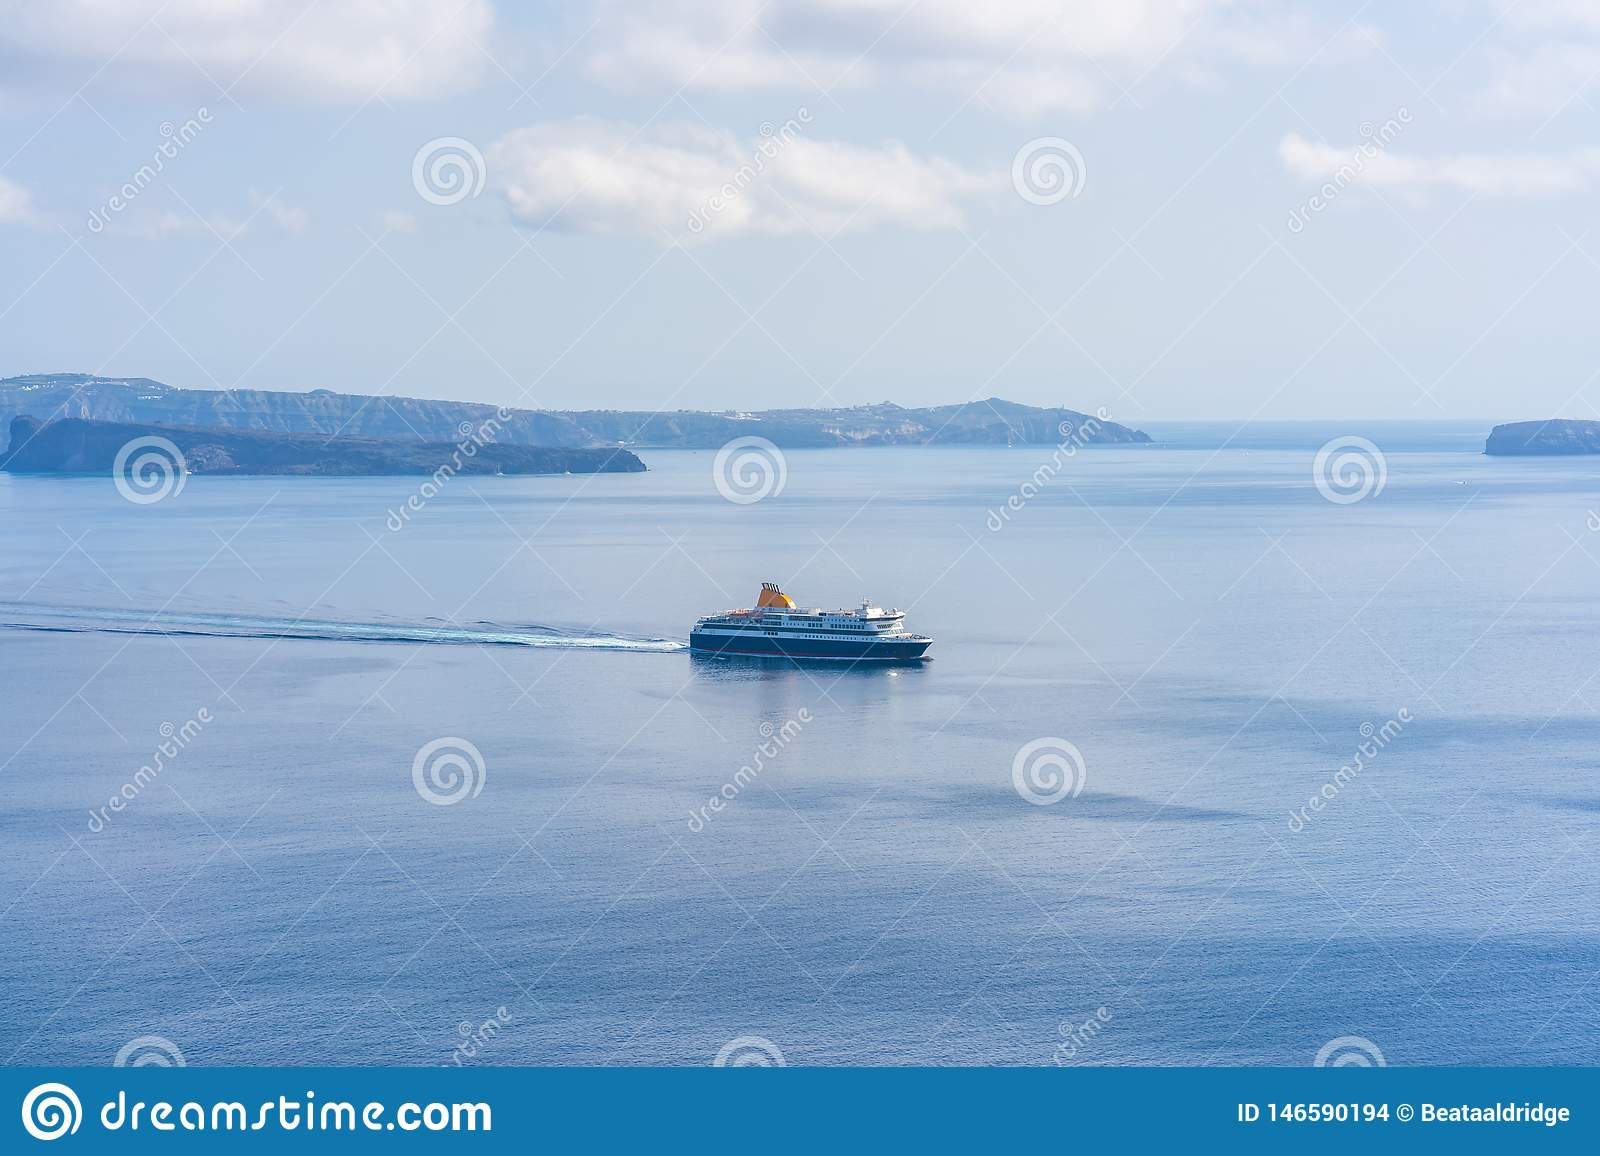 Santorini Landscape With Of Volcano Caldera And Ferry On